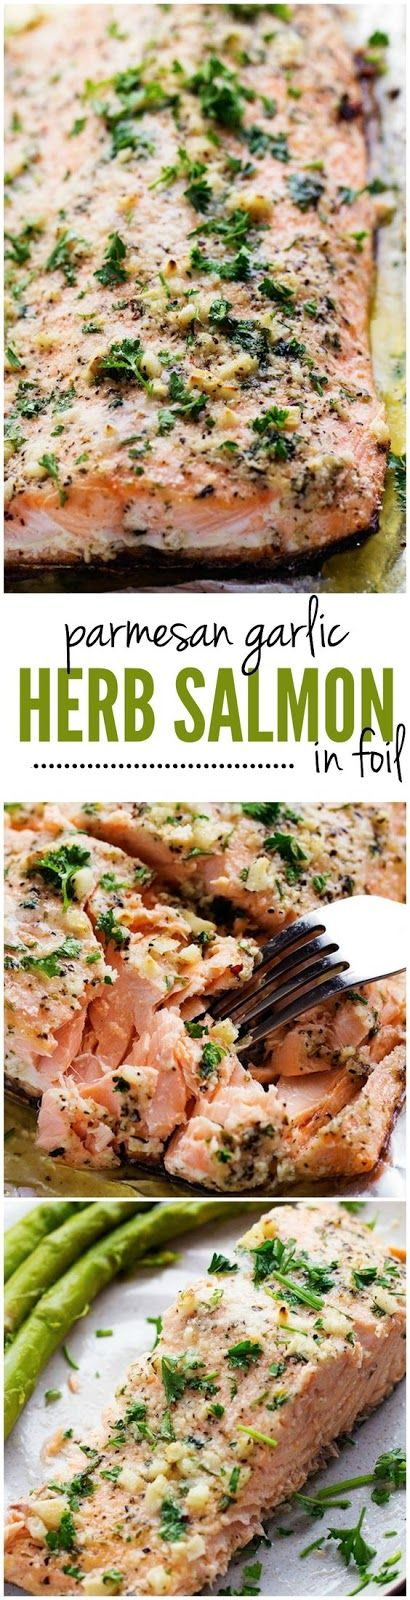 Baked Parmesan Garlic Herb Salmon in foil   Cake And Food Recipe